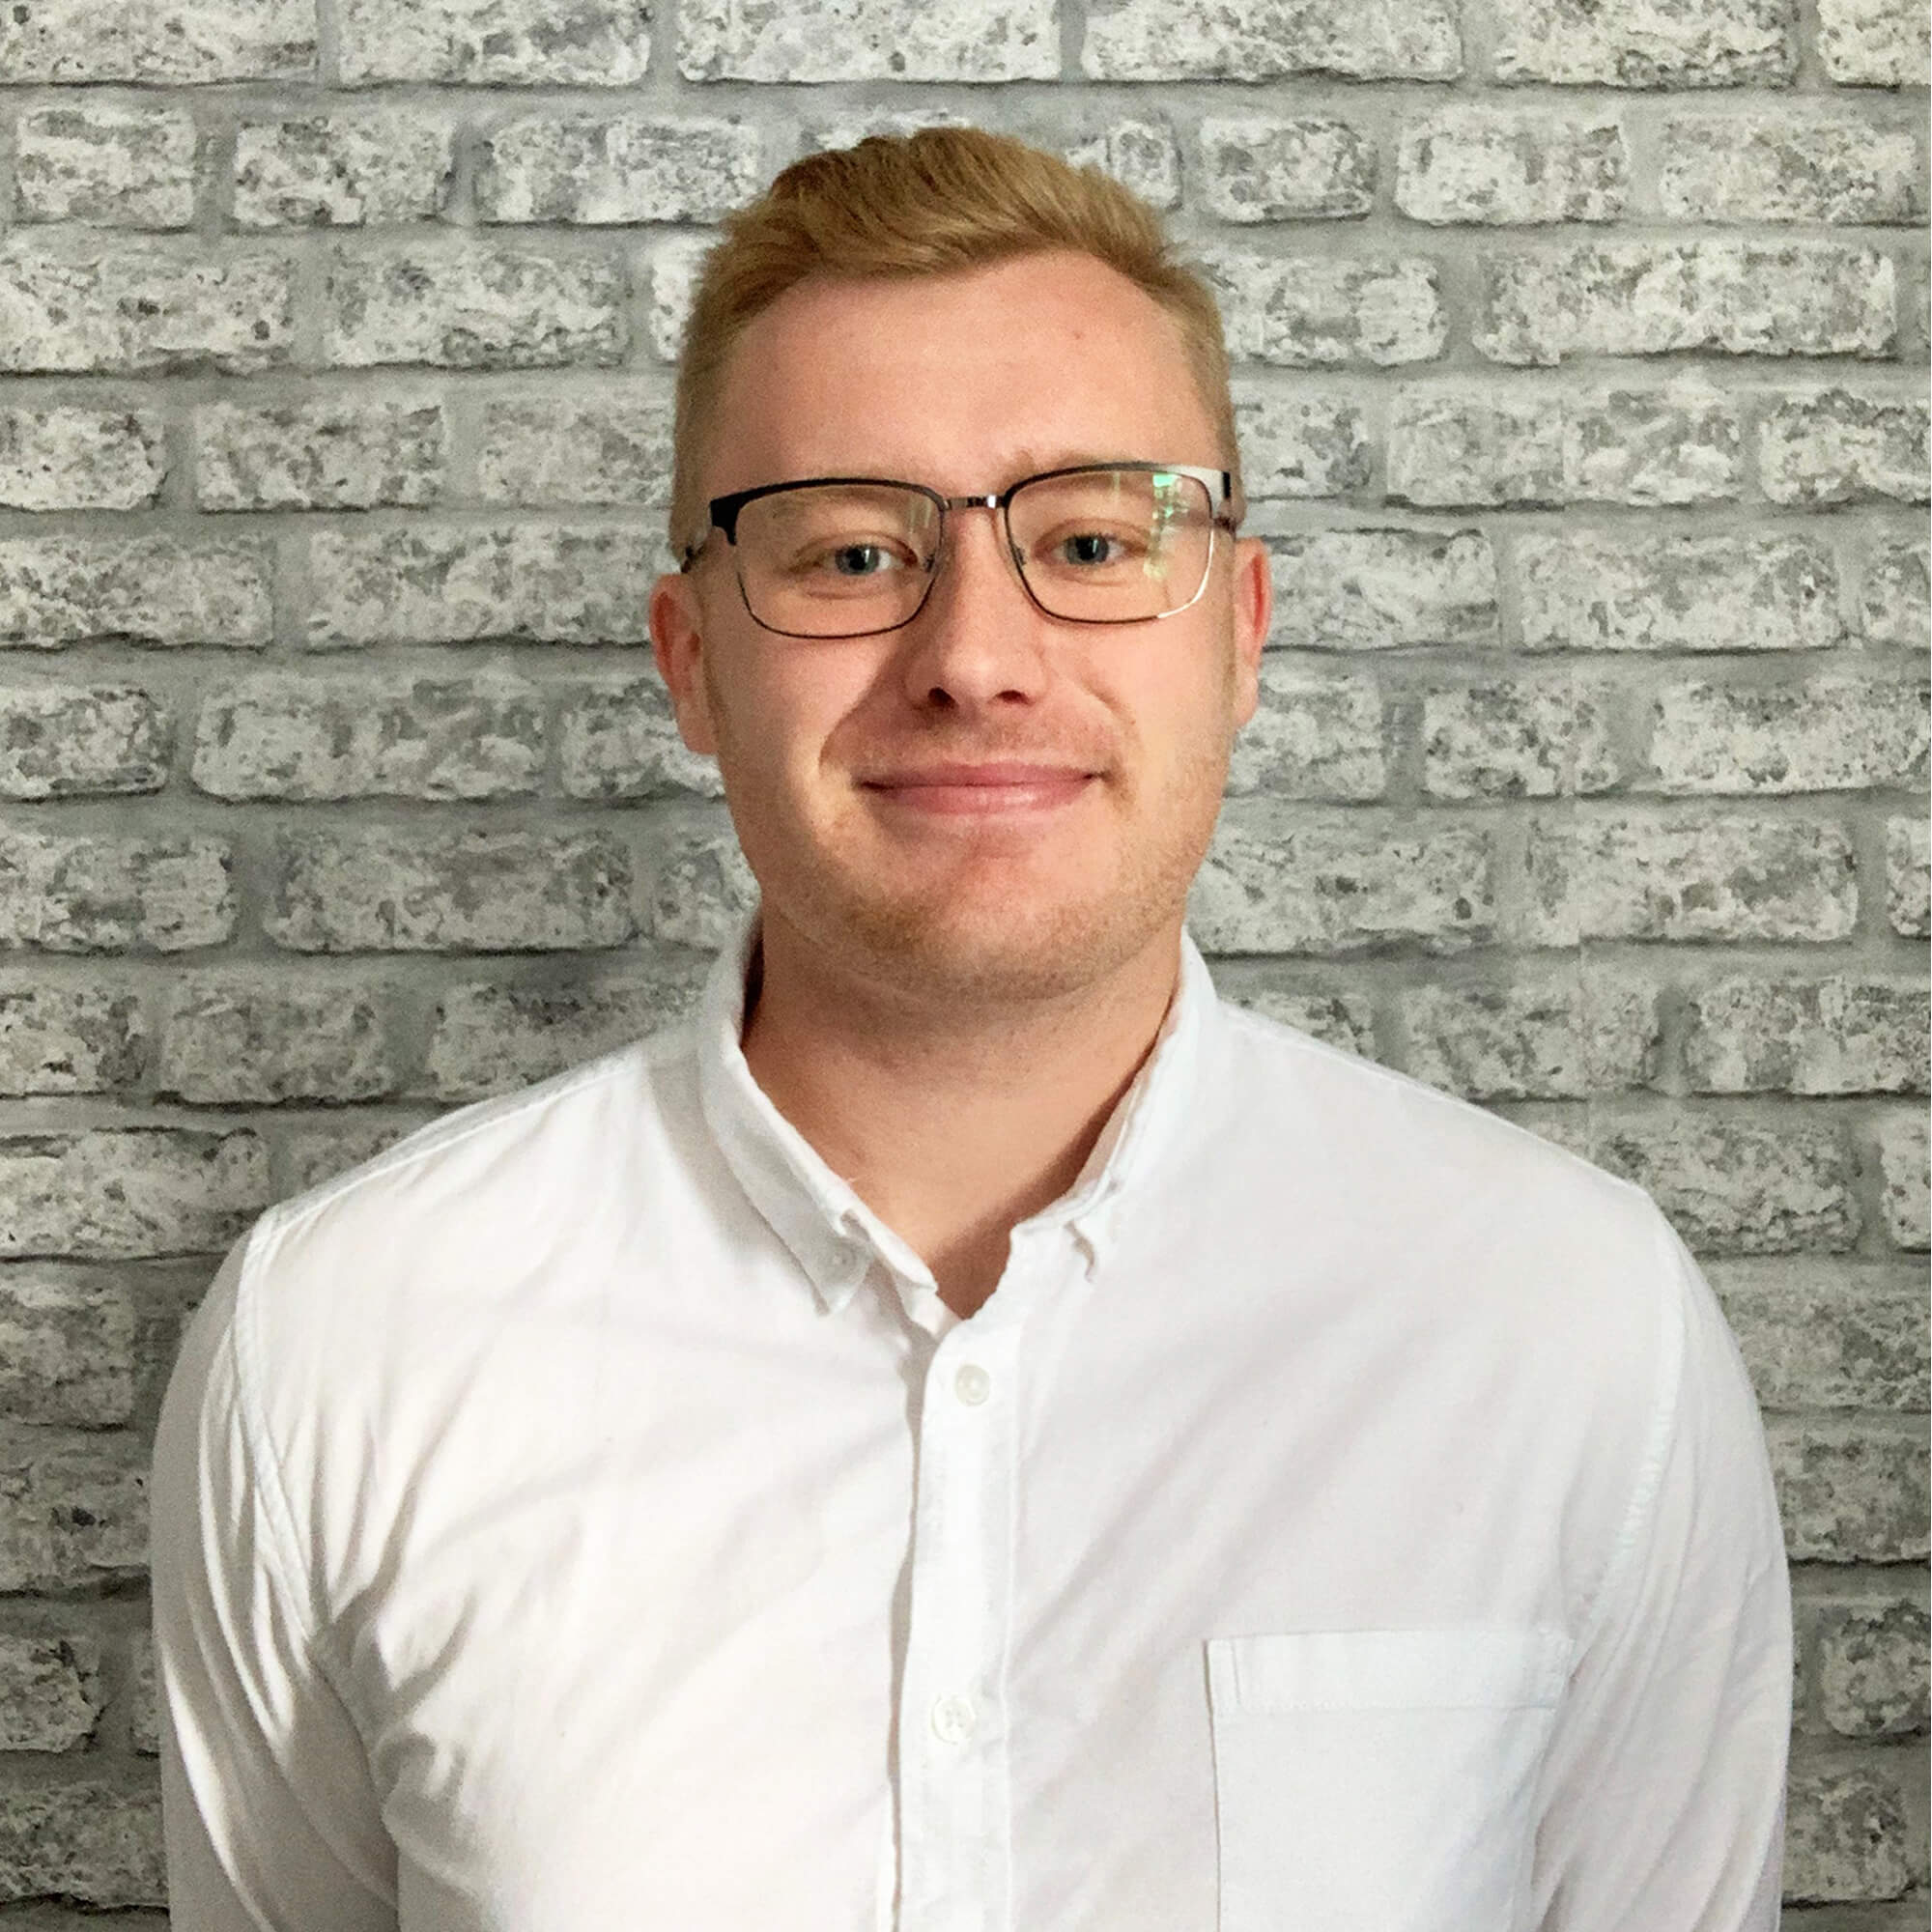 Photo of a blonde male wearing glasses and a white shirt looking at the camera